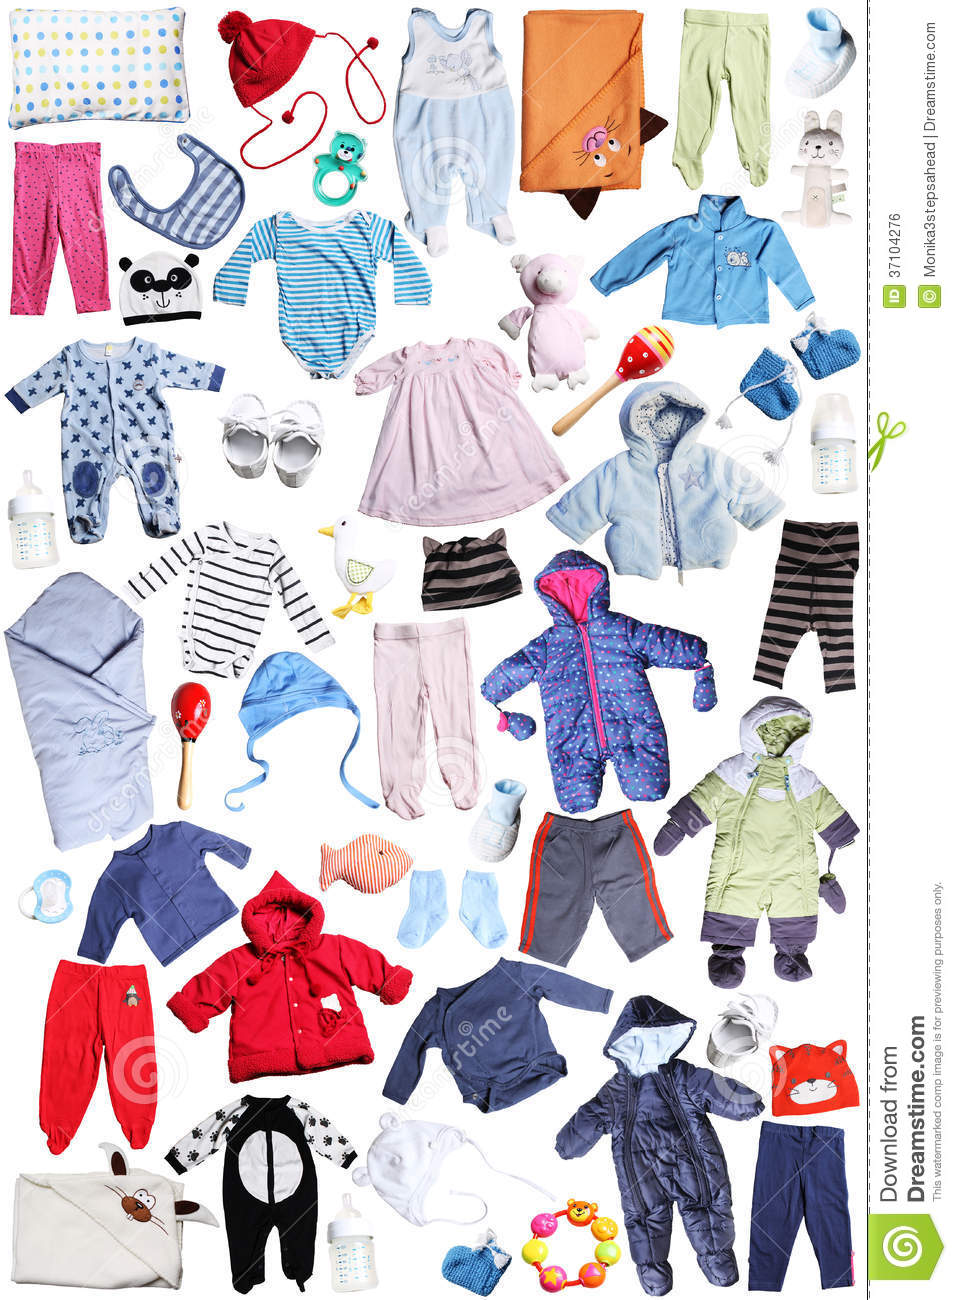 Clothes Accessories: Clothes And Accessories For Children Royalty Free Stock